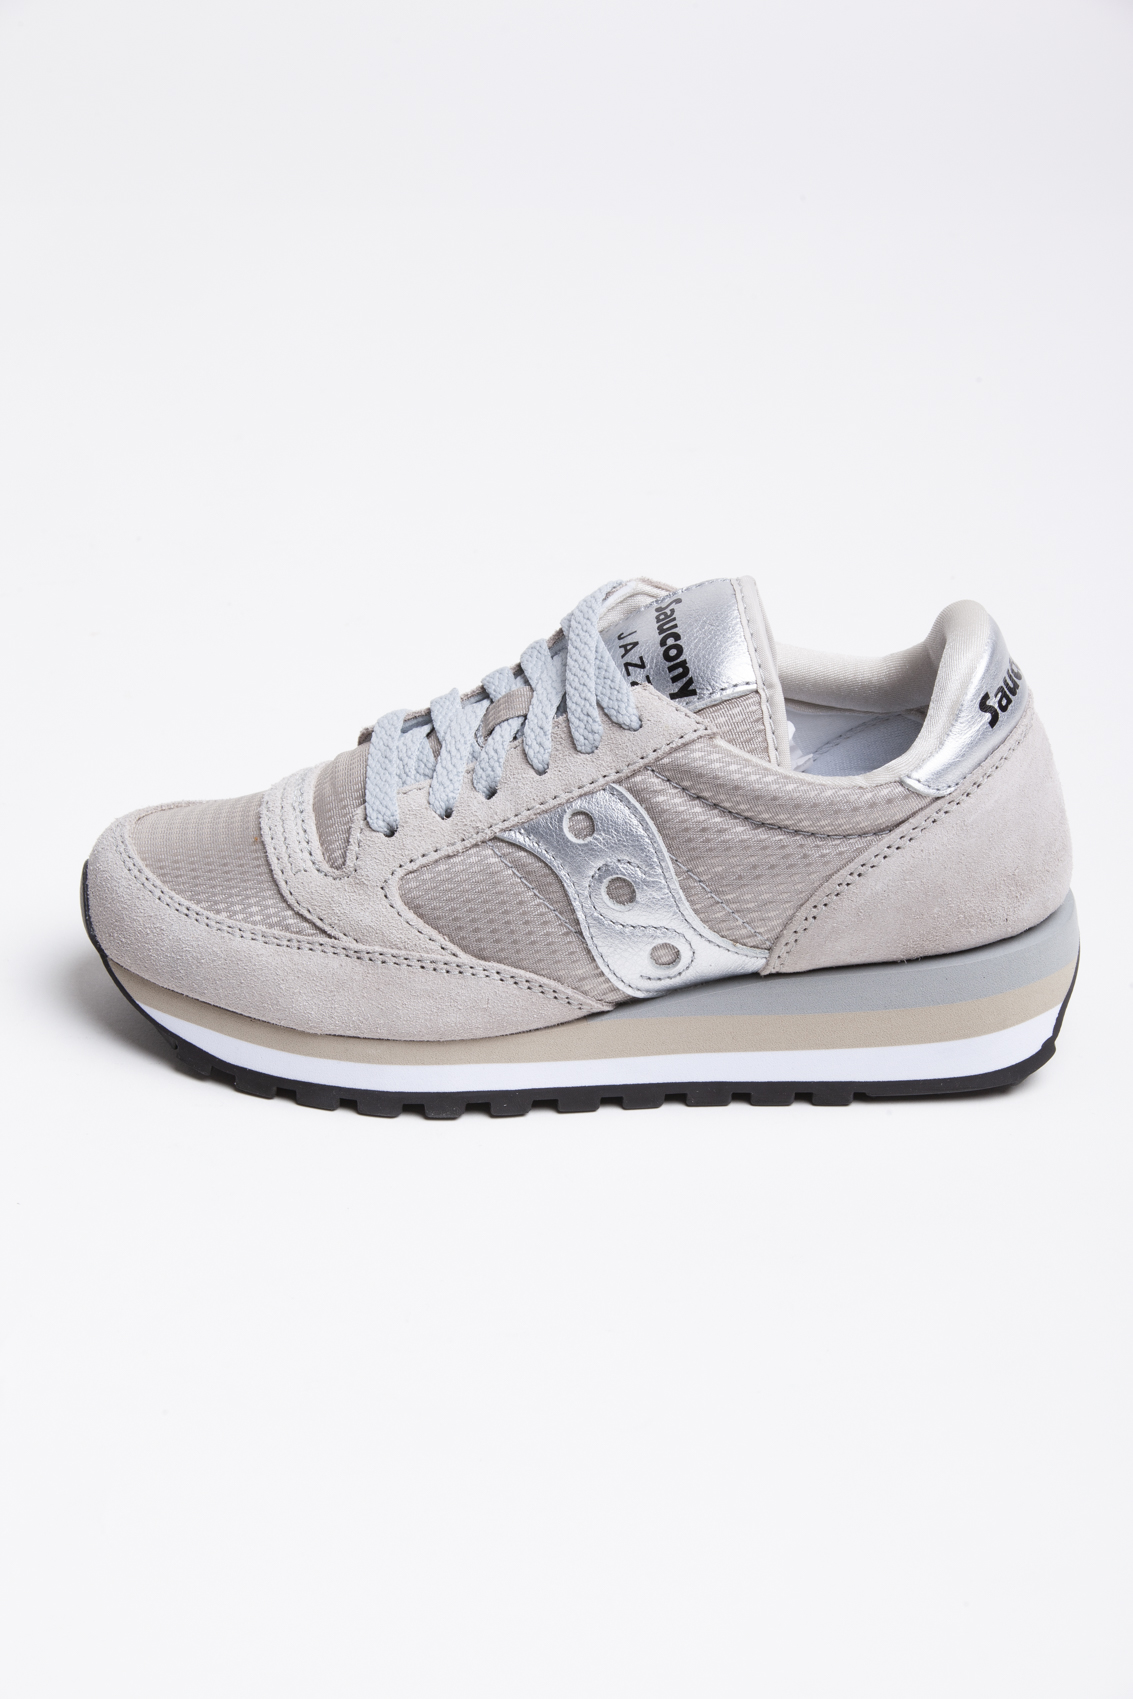 saucony argento limited edition